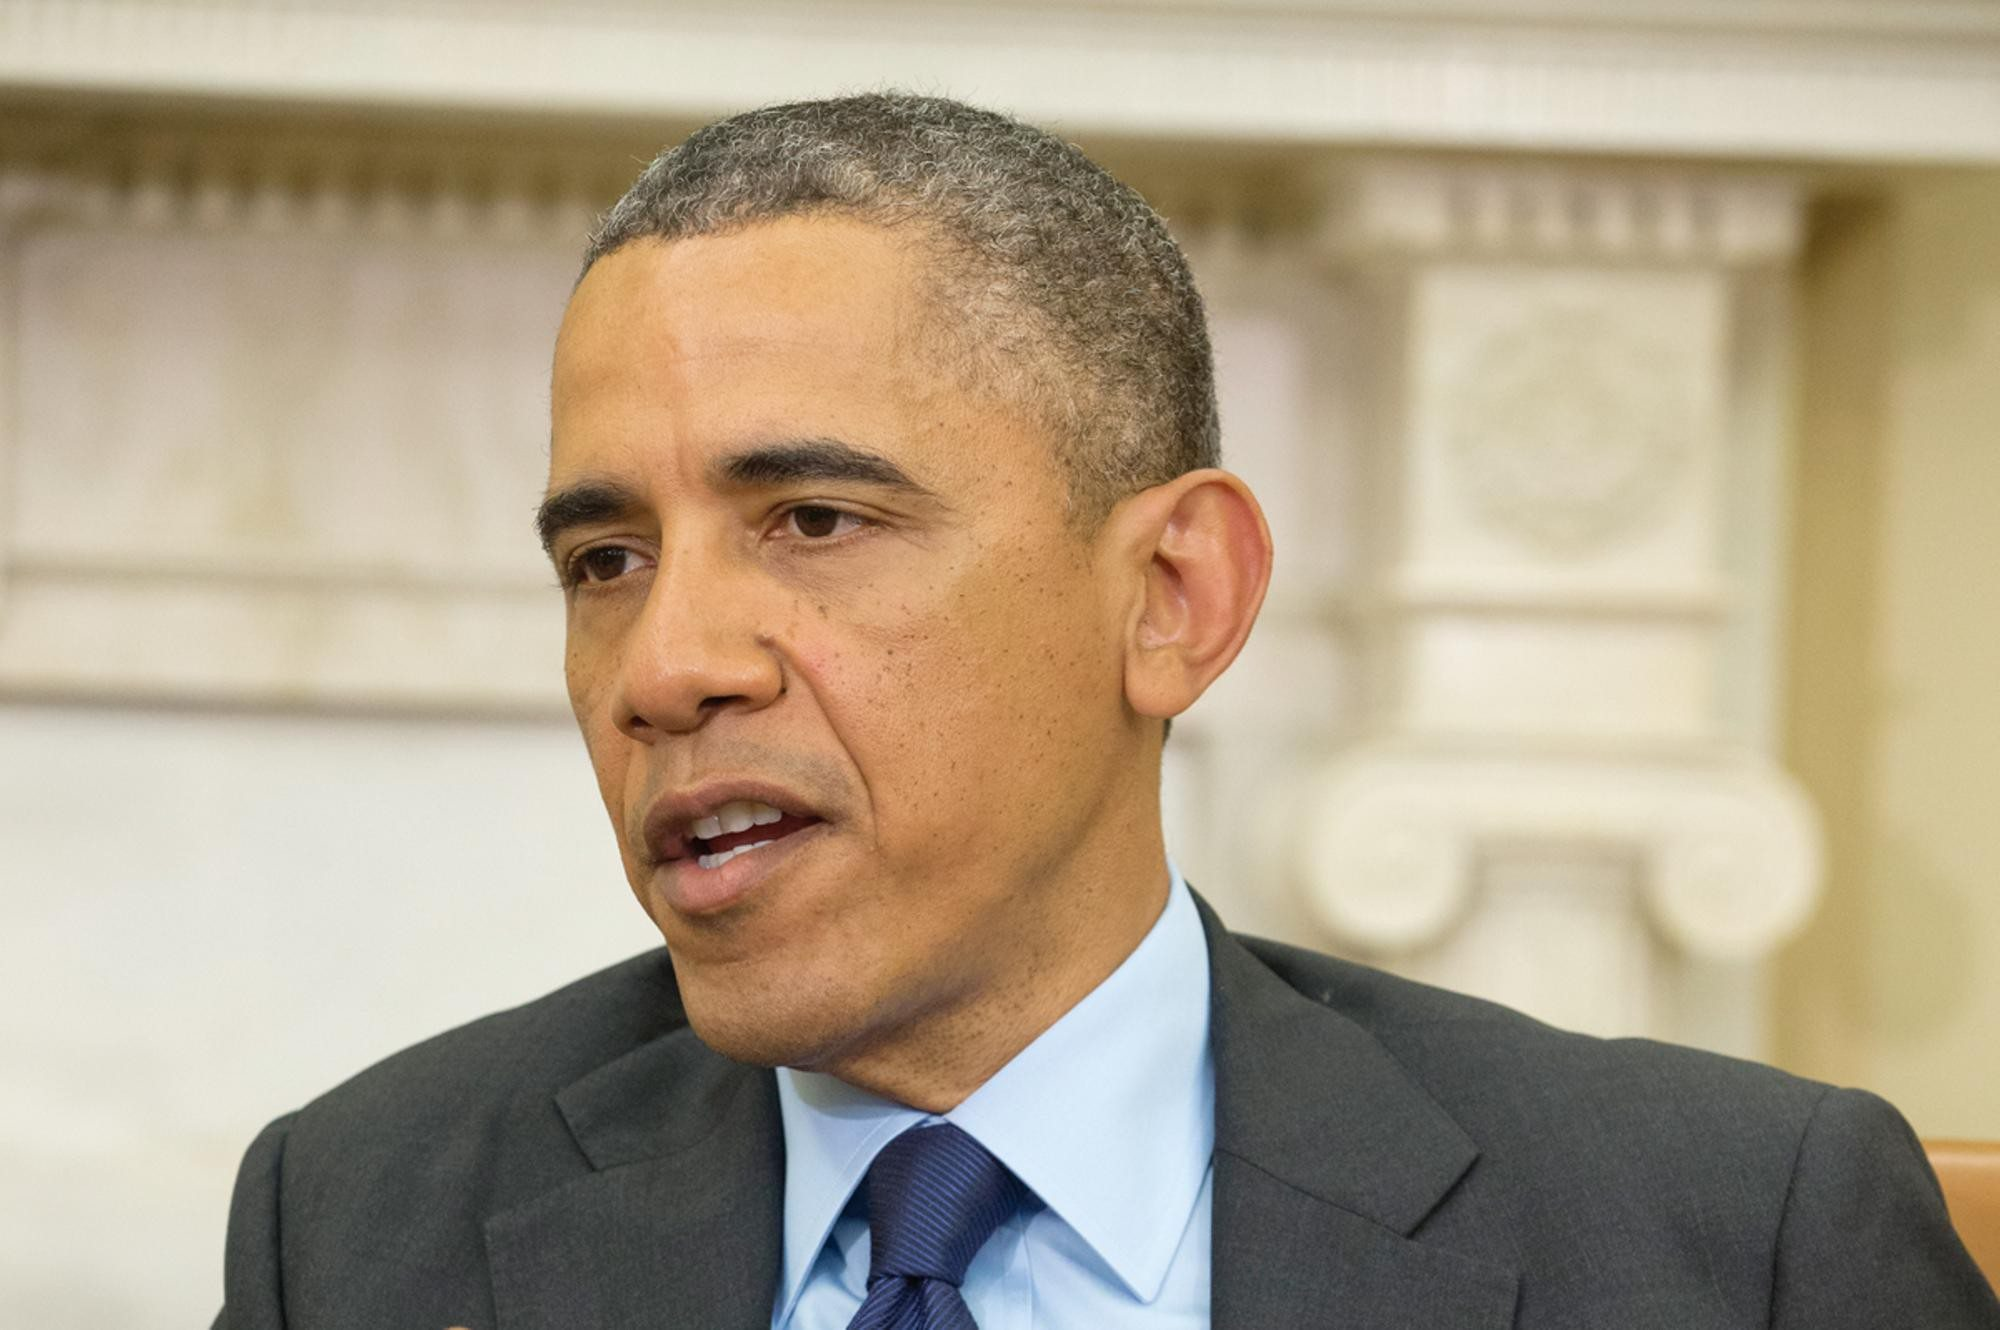 Associated PressPresident Barack Obama will be visiting the Bay Area in a couple weeks to raise money for his Democratic colleagues in the U.S. Senate.